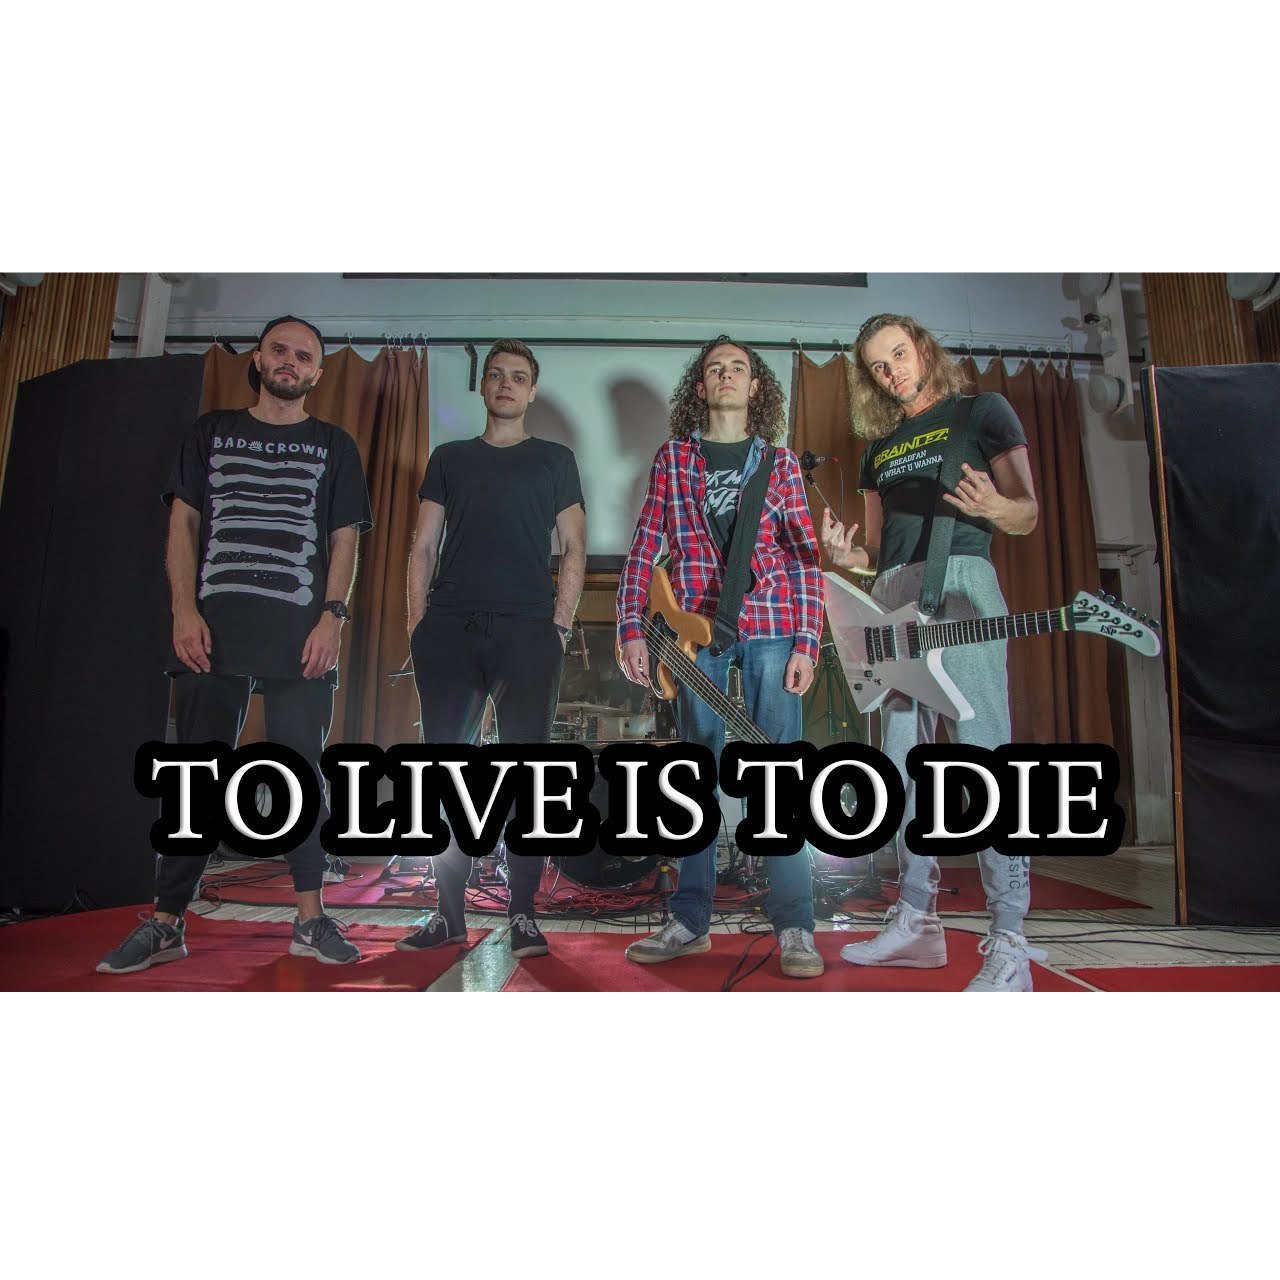 'To Live Is to Die' – the best live tribute I've seen